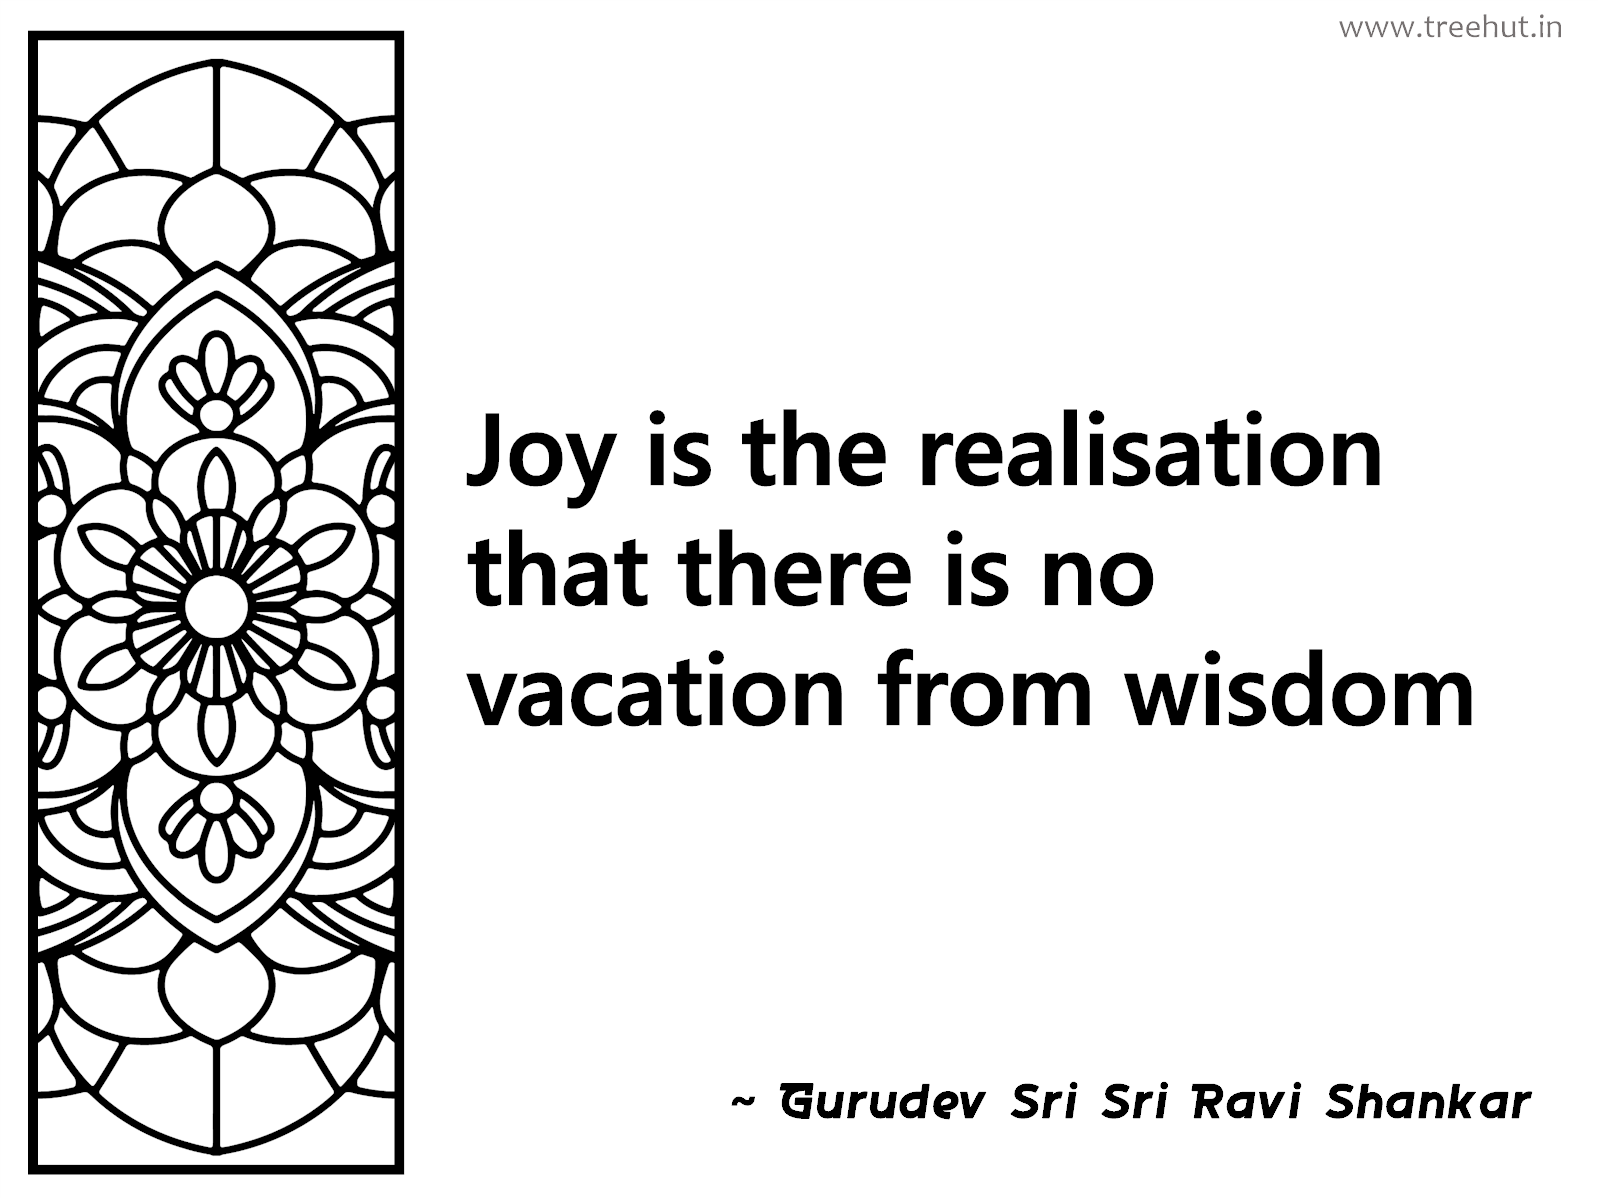 Joy is the realisation that there is no vacation from wisdom Inspirational Quote by Gurudev Sri Sri Ravi Shankar, coloring pages